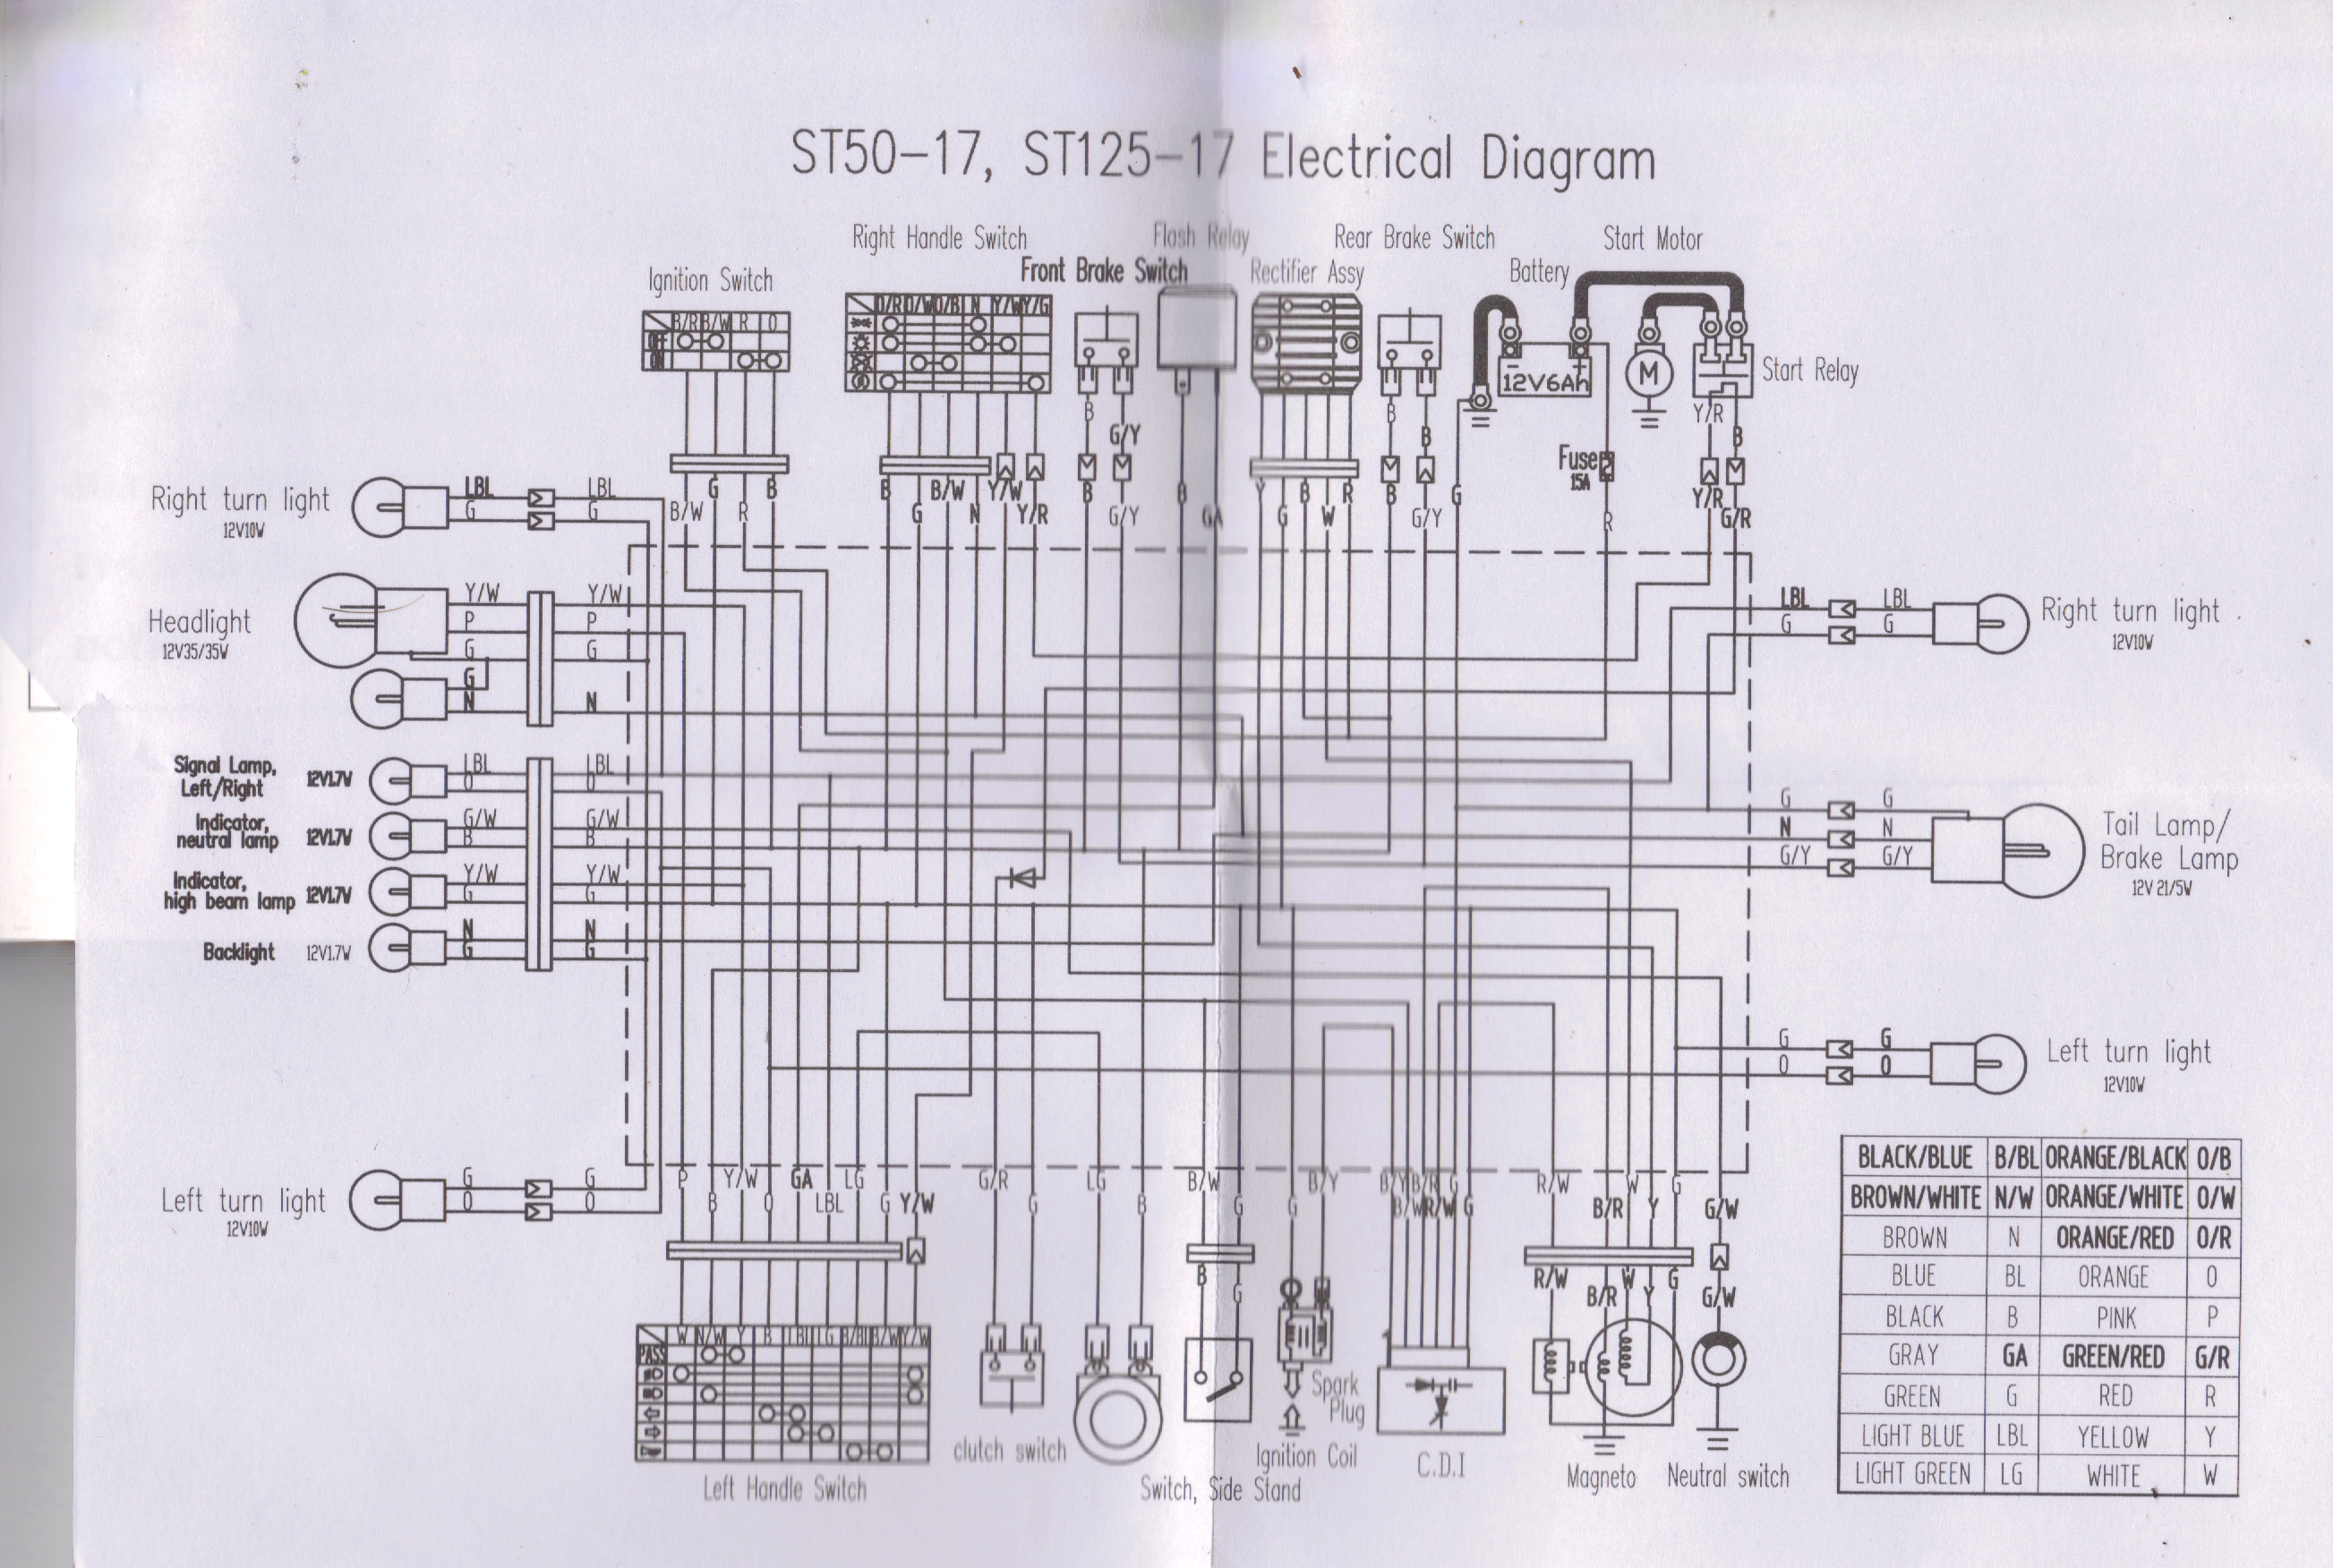 ace wiring diagram link larger image sharetheexperience co uk ace images acewiring png Â